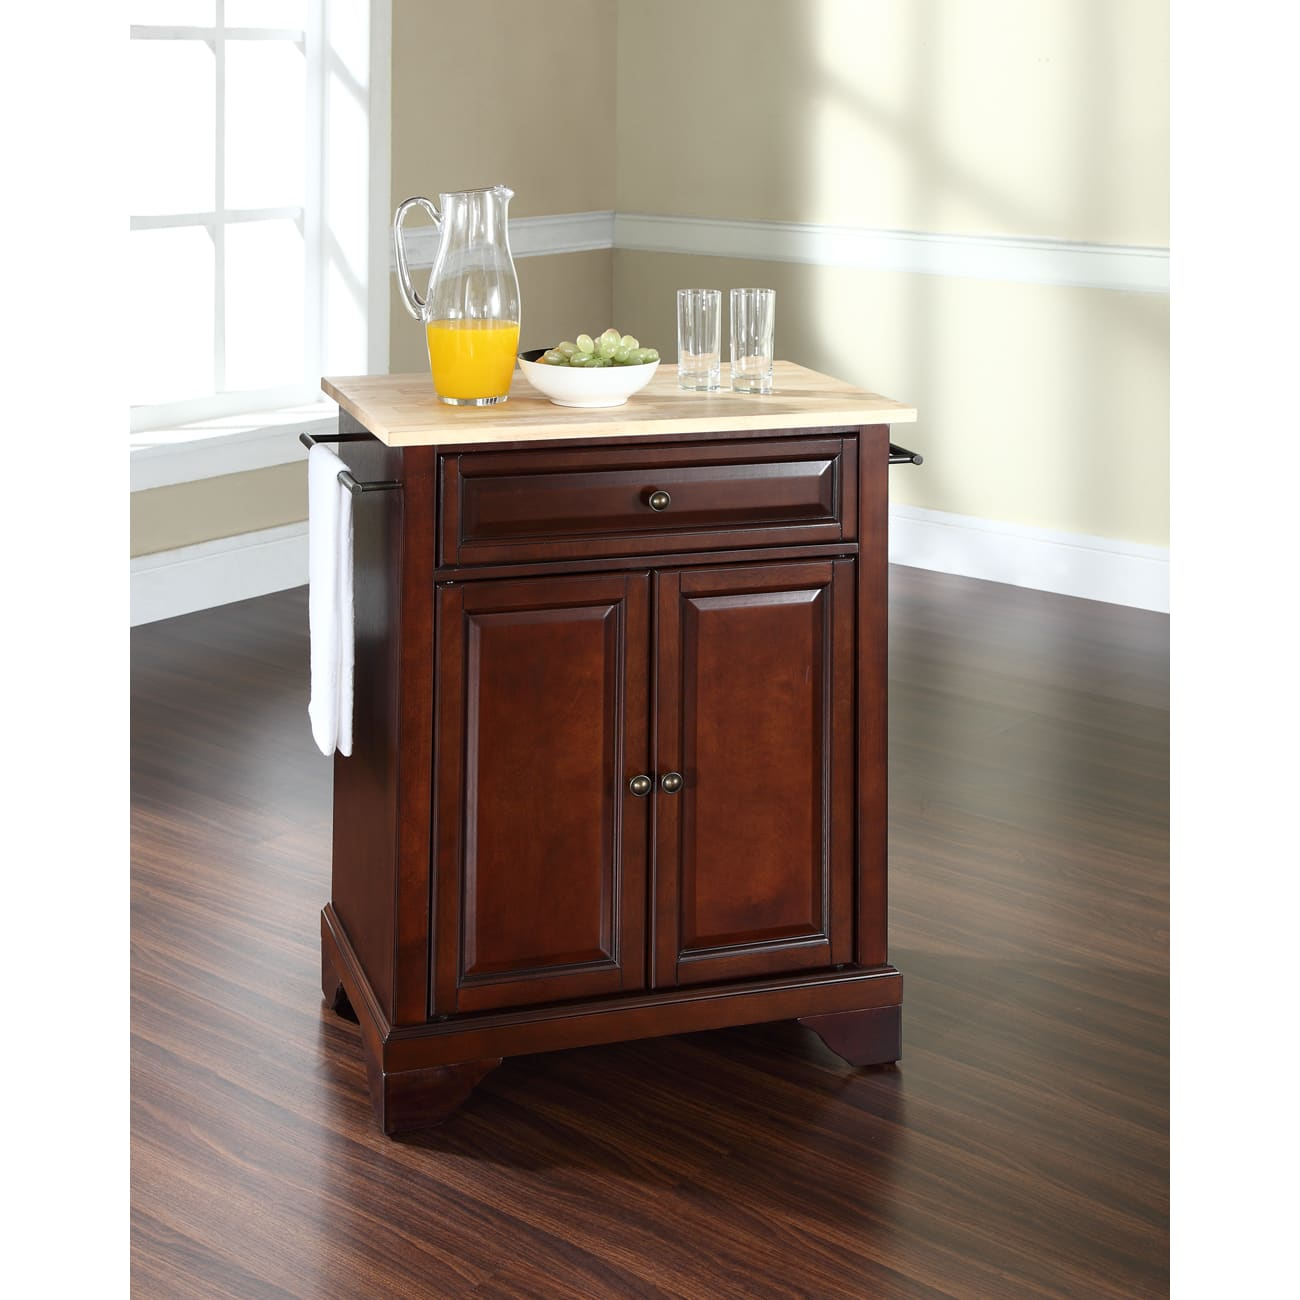 overstock kitchen island kitchen islands for less overstock 14493